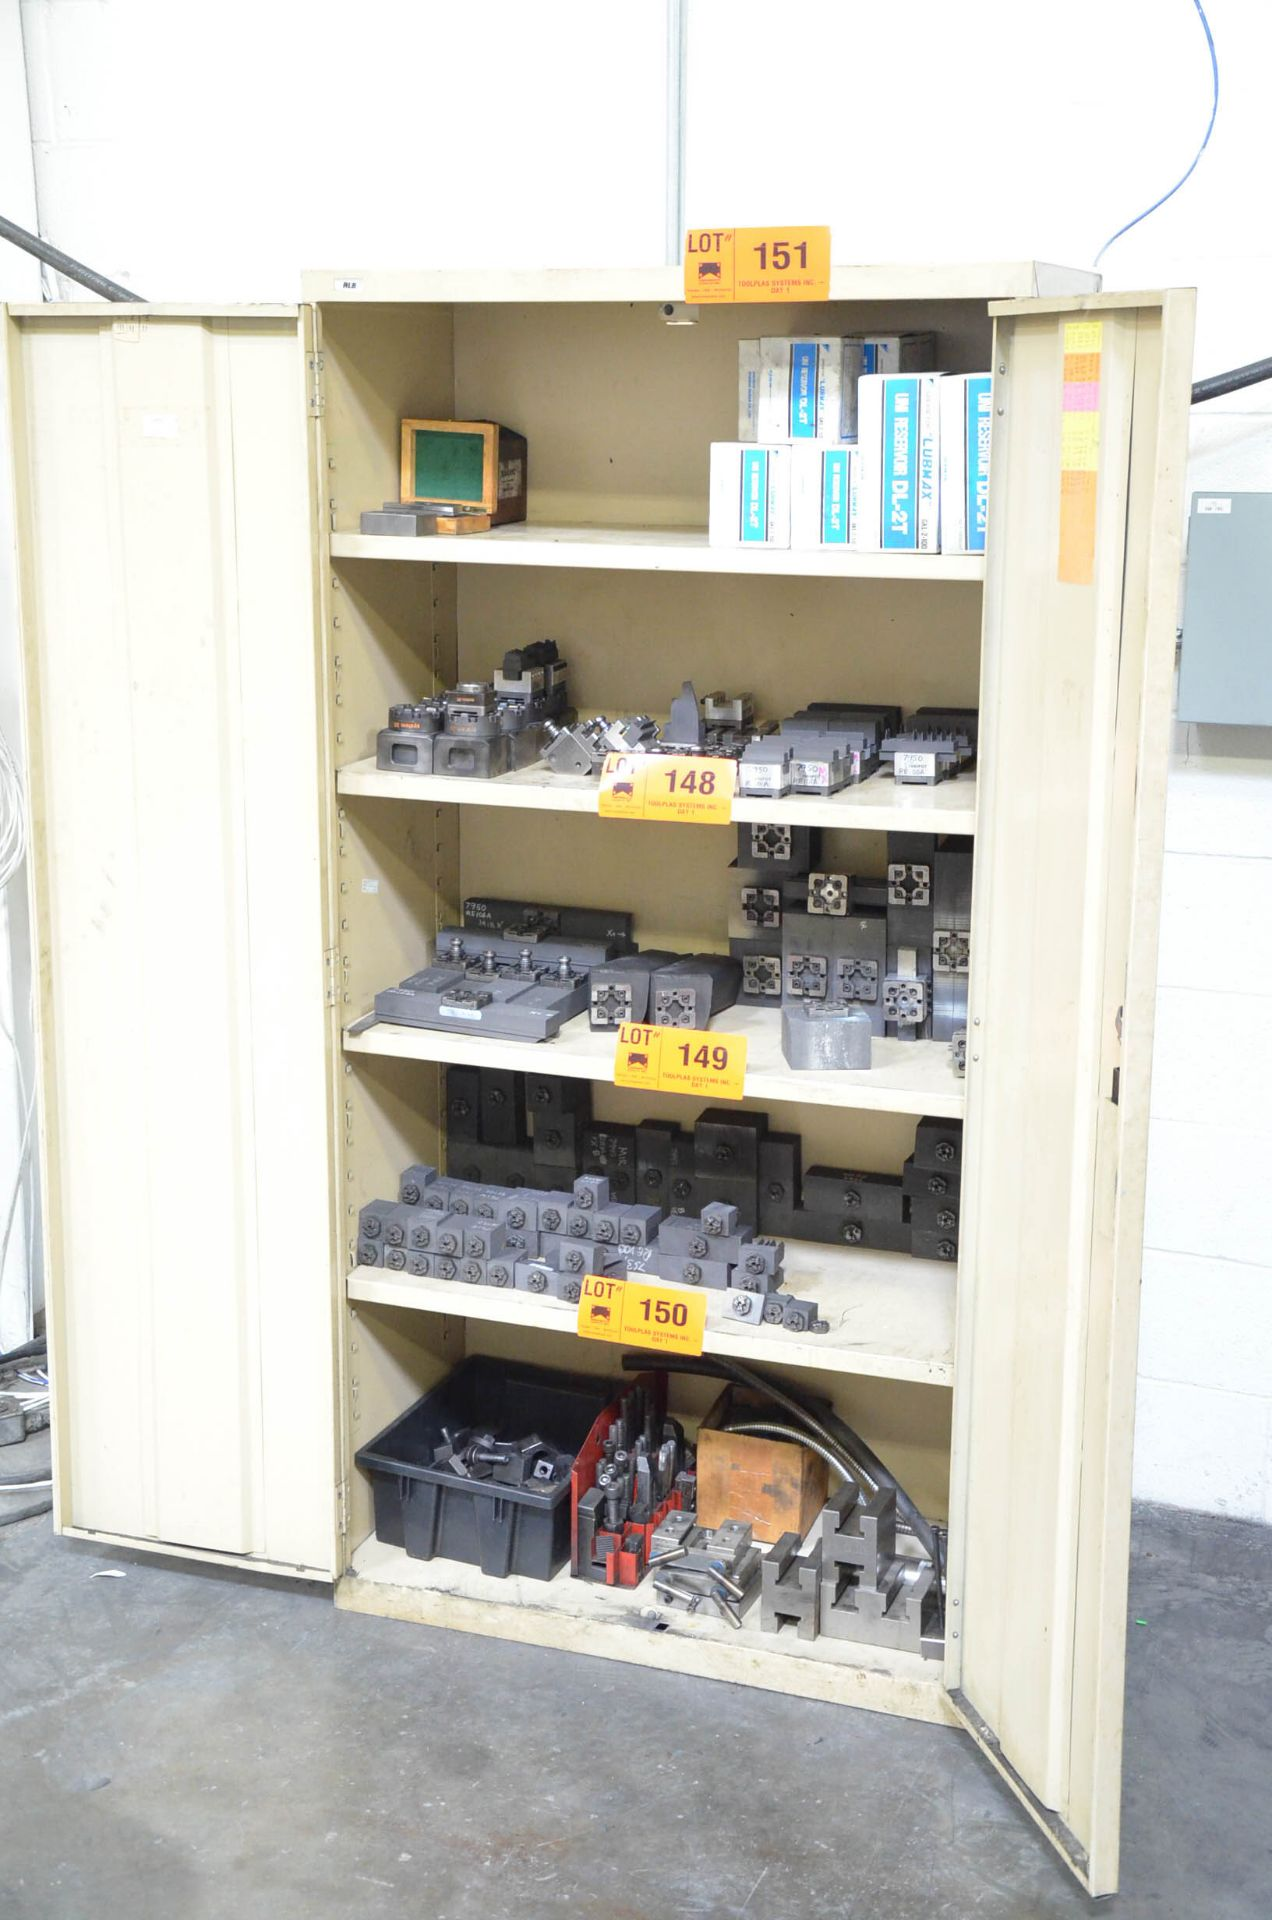 LOT/ HIBOY CABINET WITH BALANCE OF SYSTEM 3R TOOLING